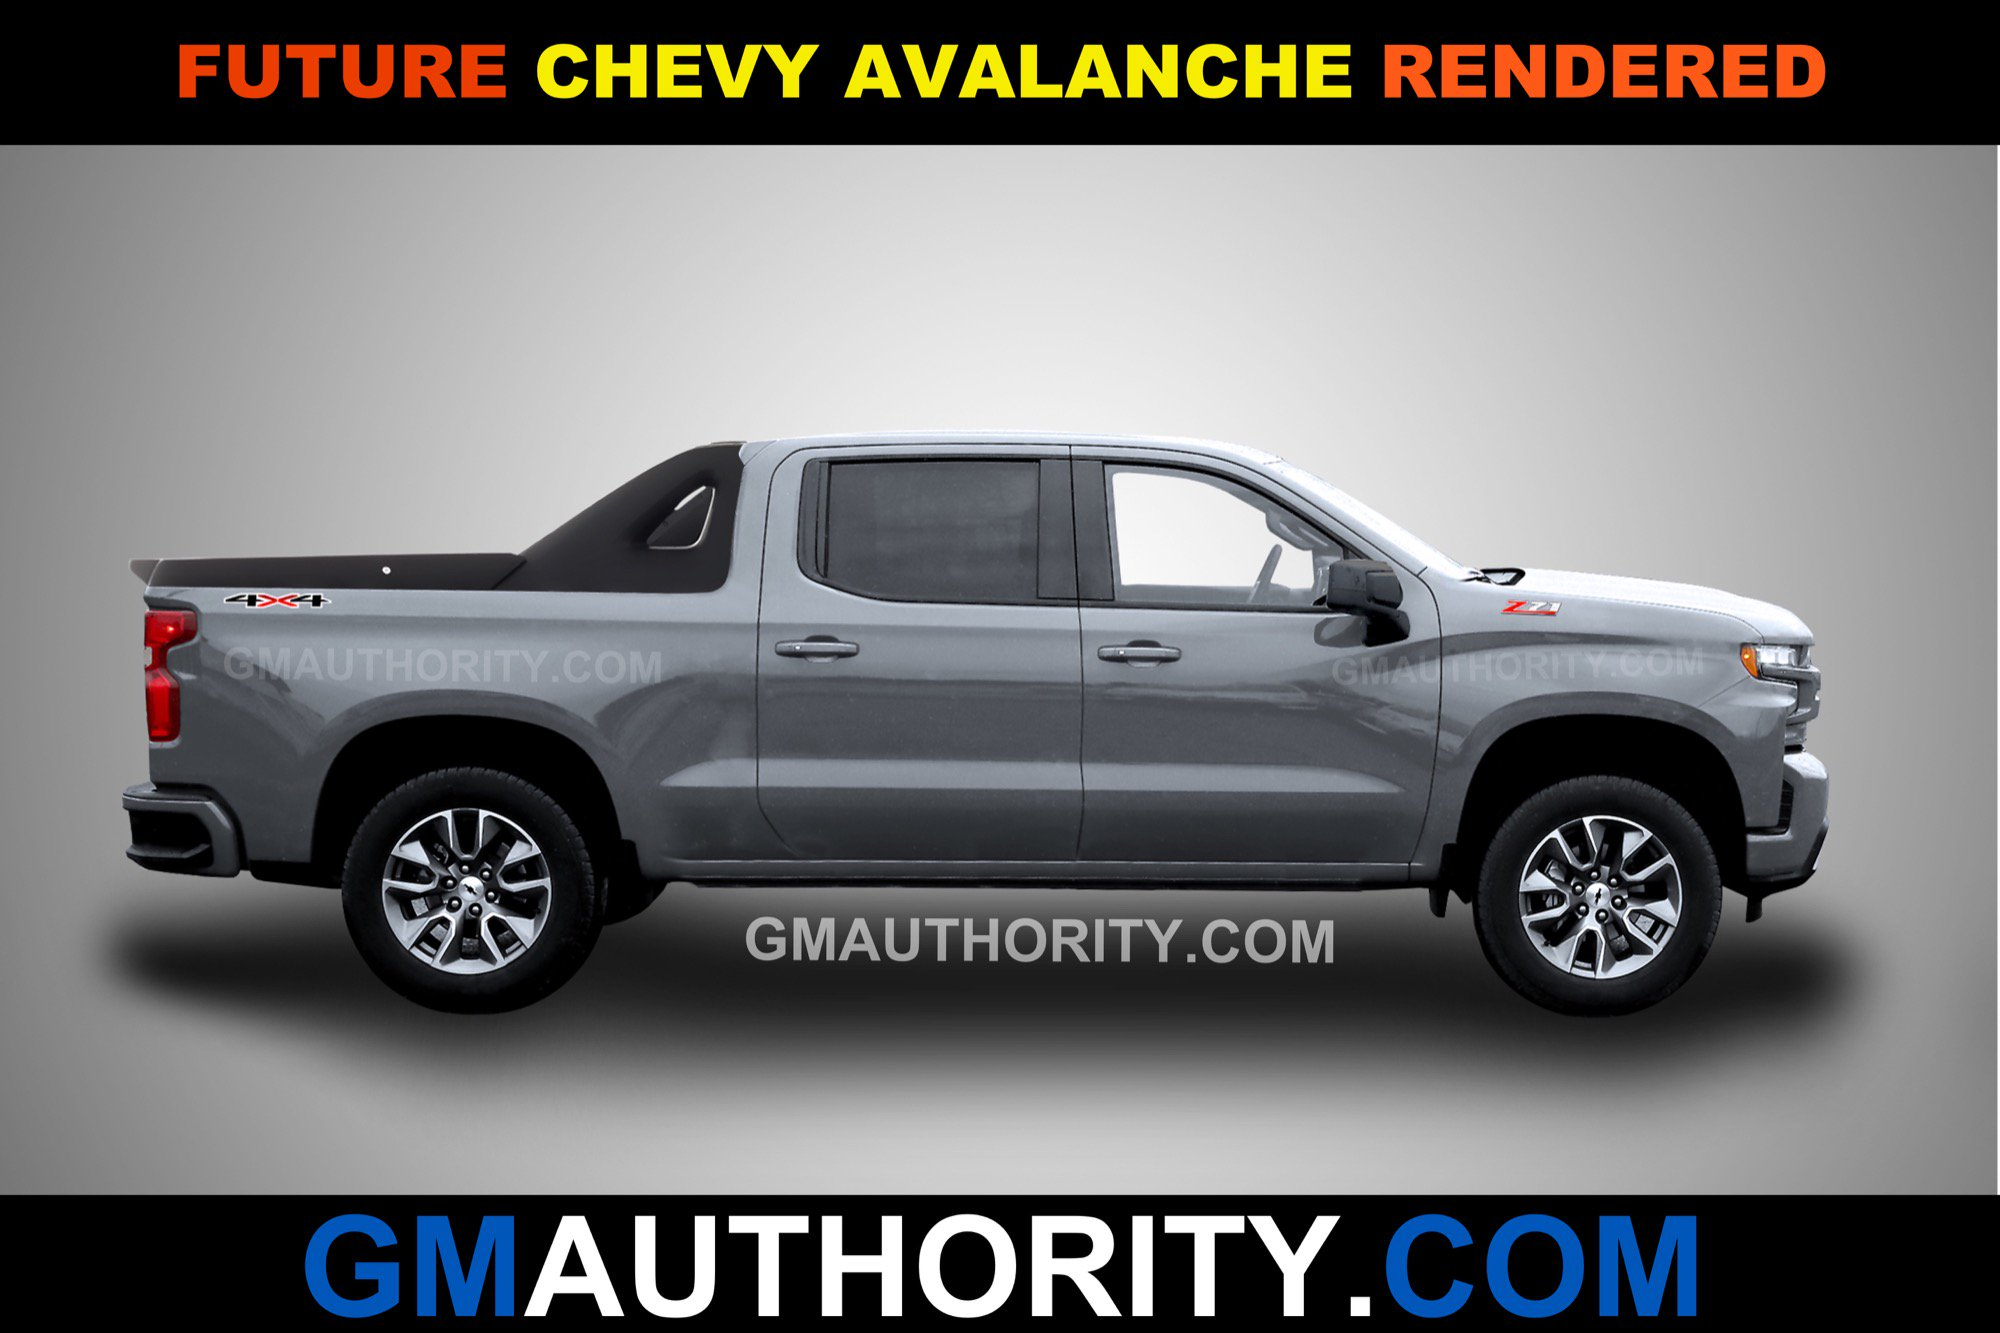 22 New 2020 Chevy Avalanche Concept and Review